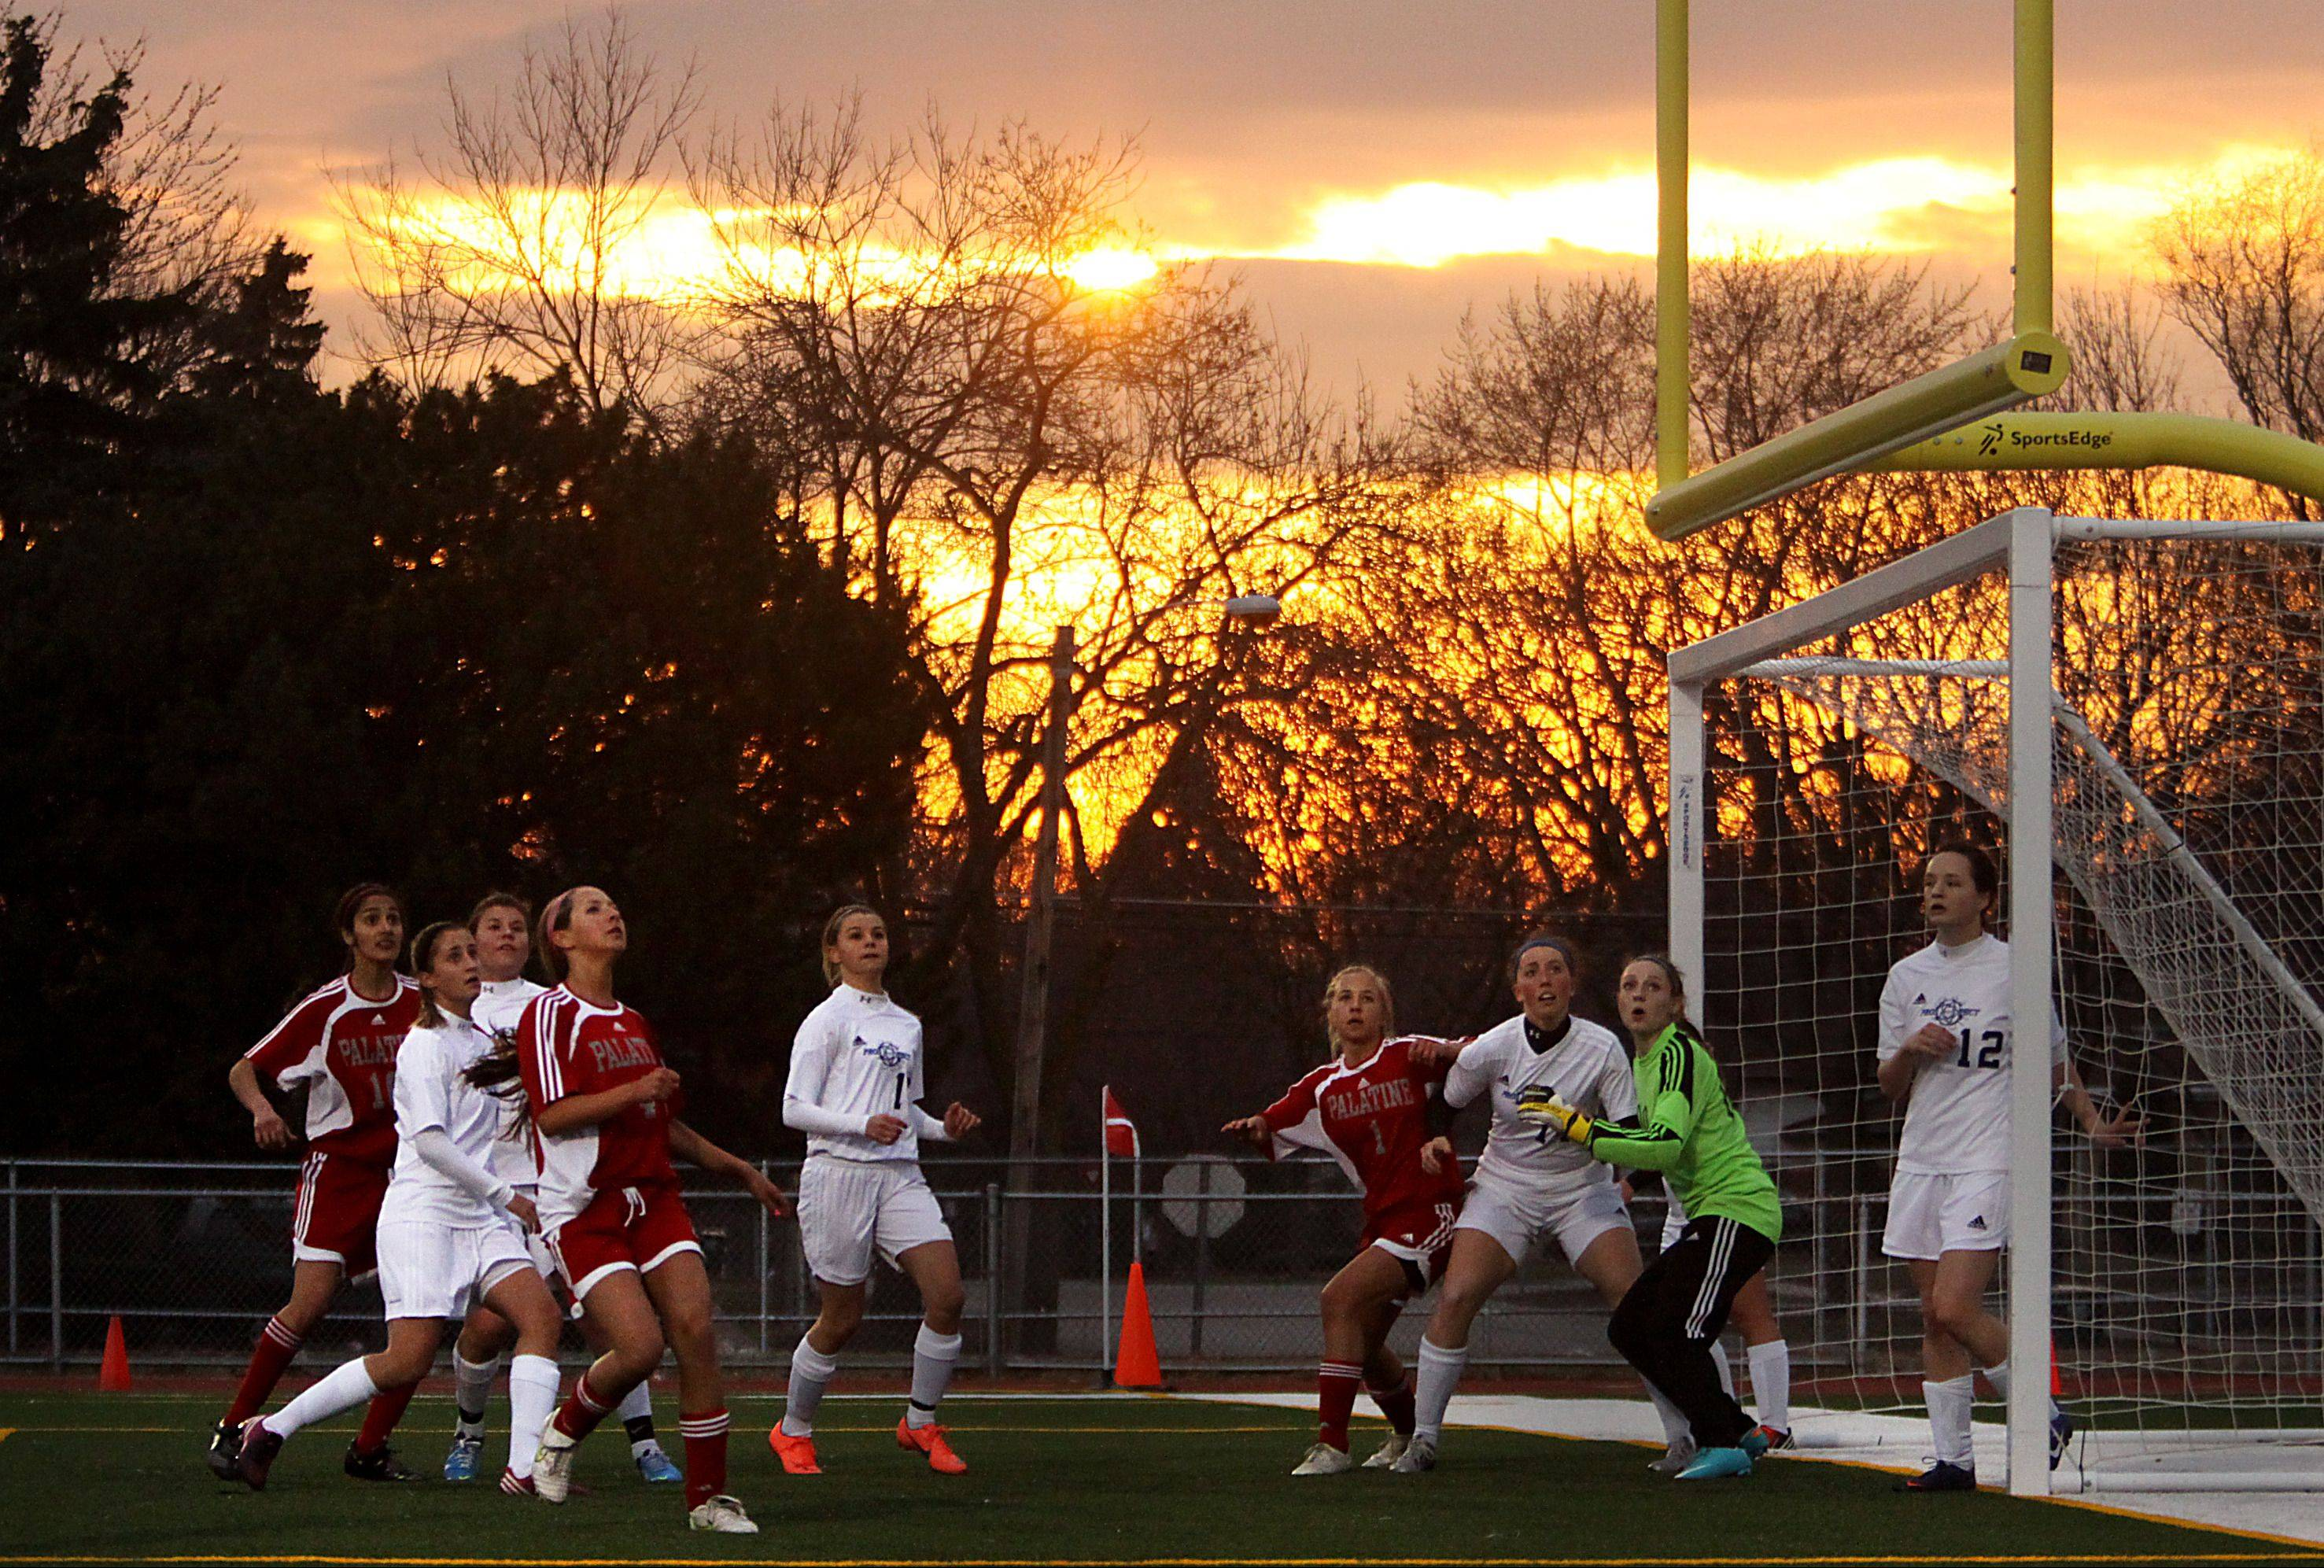 Prospect and Palatine players prepare for an incoming corner kick at the Prospect goal during Thursday evening�s game at George Gattas Memorial Stadium at Prospect.